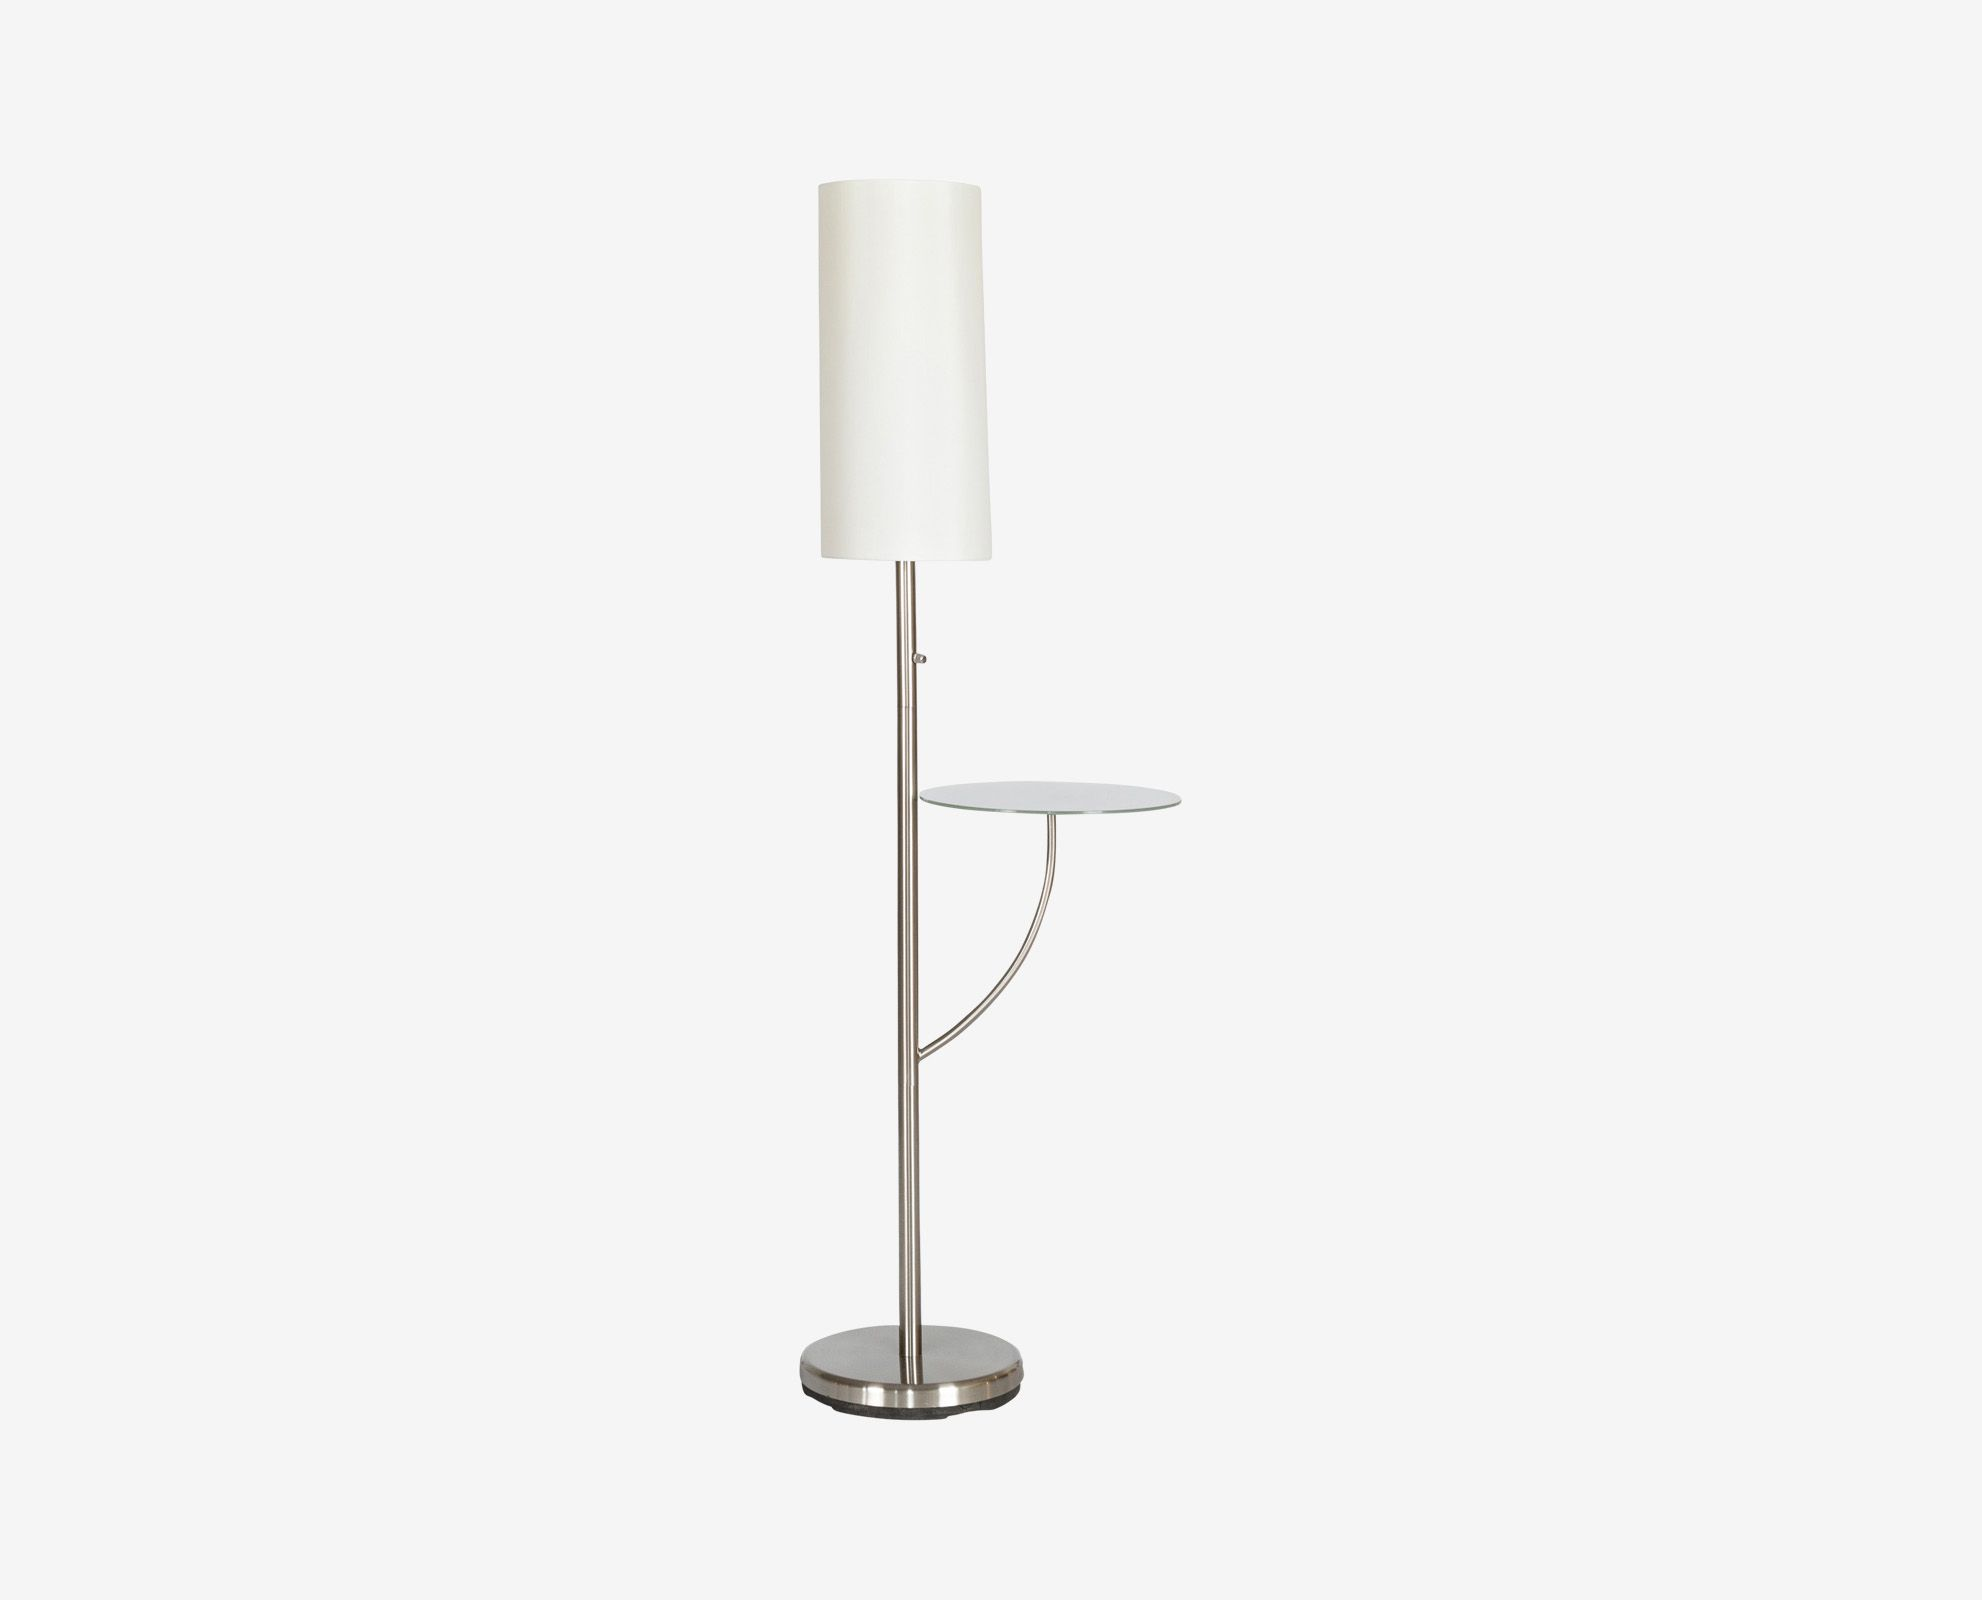 Scandinavian Designs Add Contemporary Ambiance Into Your Home With The Laevis Floor Lamp The Thin Satin Steel Lines And Long Natural Floor Lamp Home Decor Home